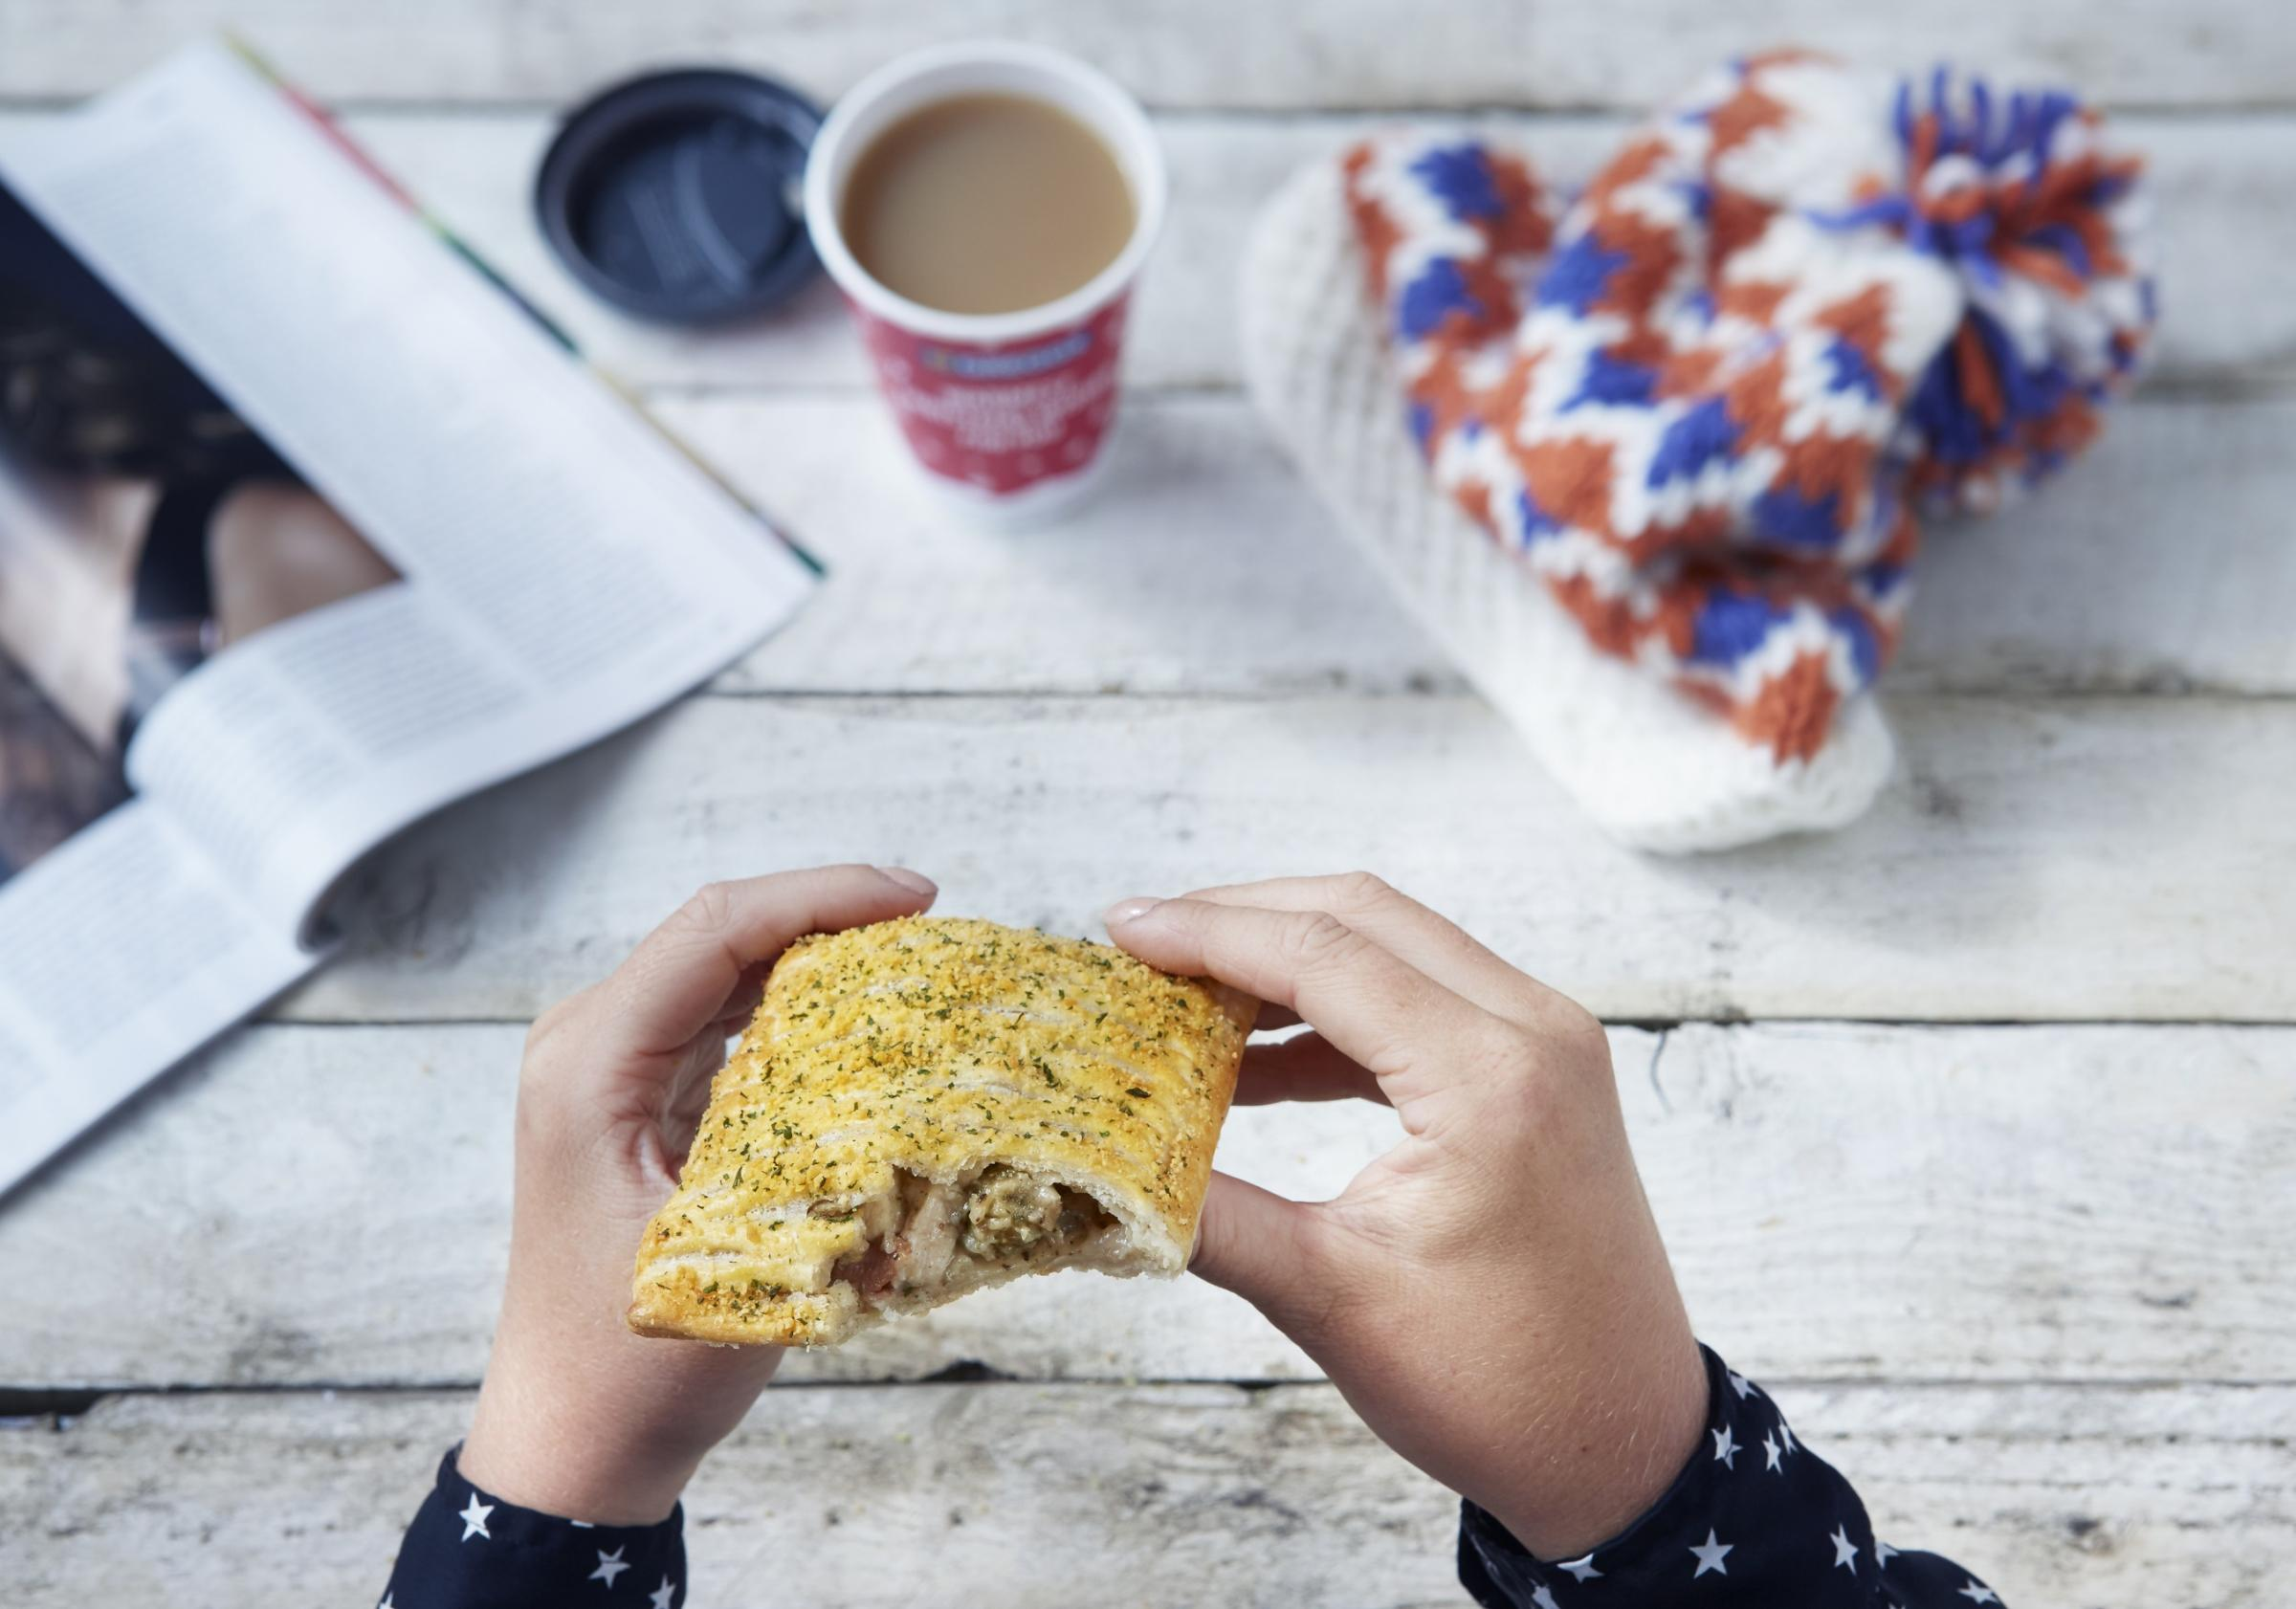 The popular festive bake is back at Greggs and they have a new festive menu